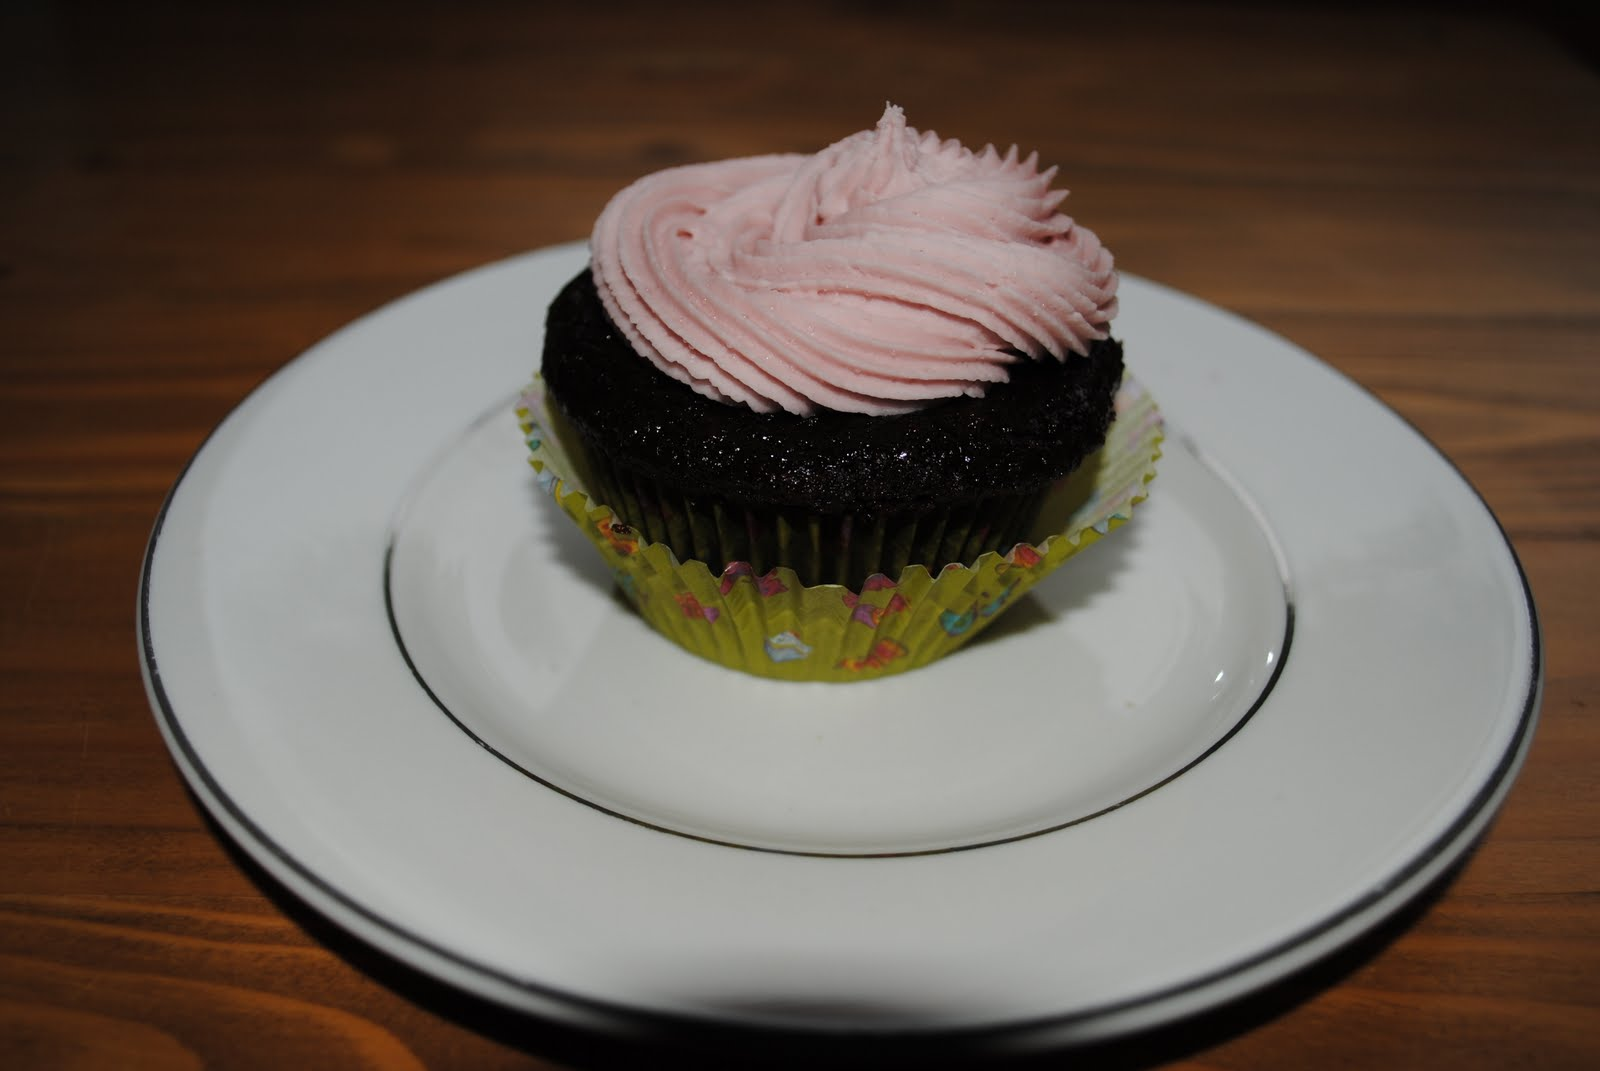 ... Cupcakes: Cookie Cupcakes with Raspberry Buttercream Frosting